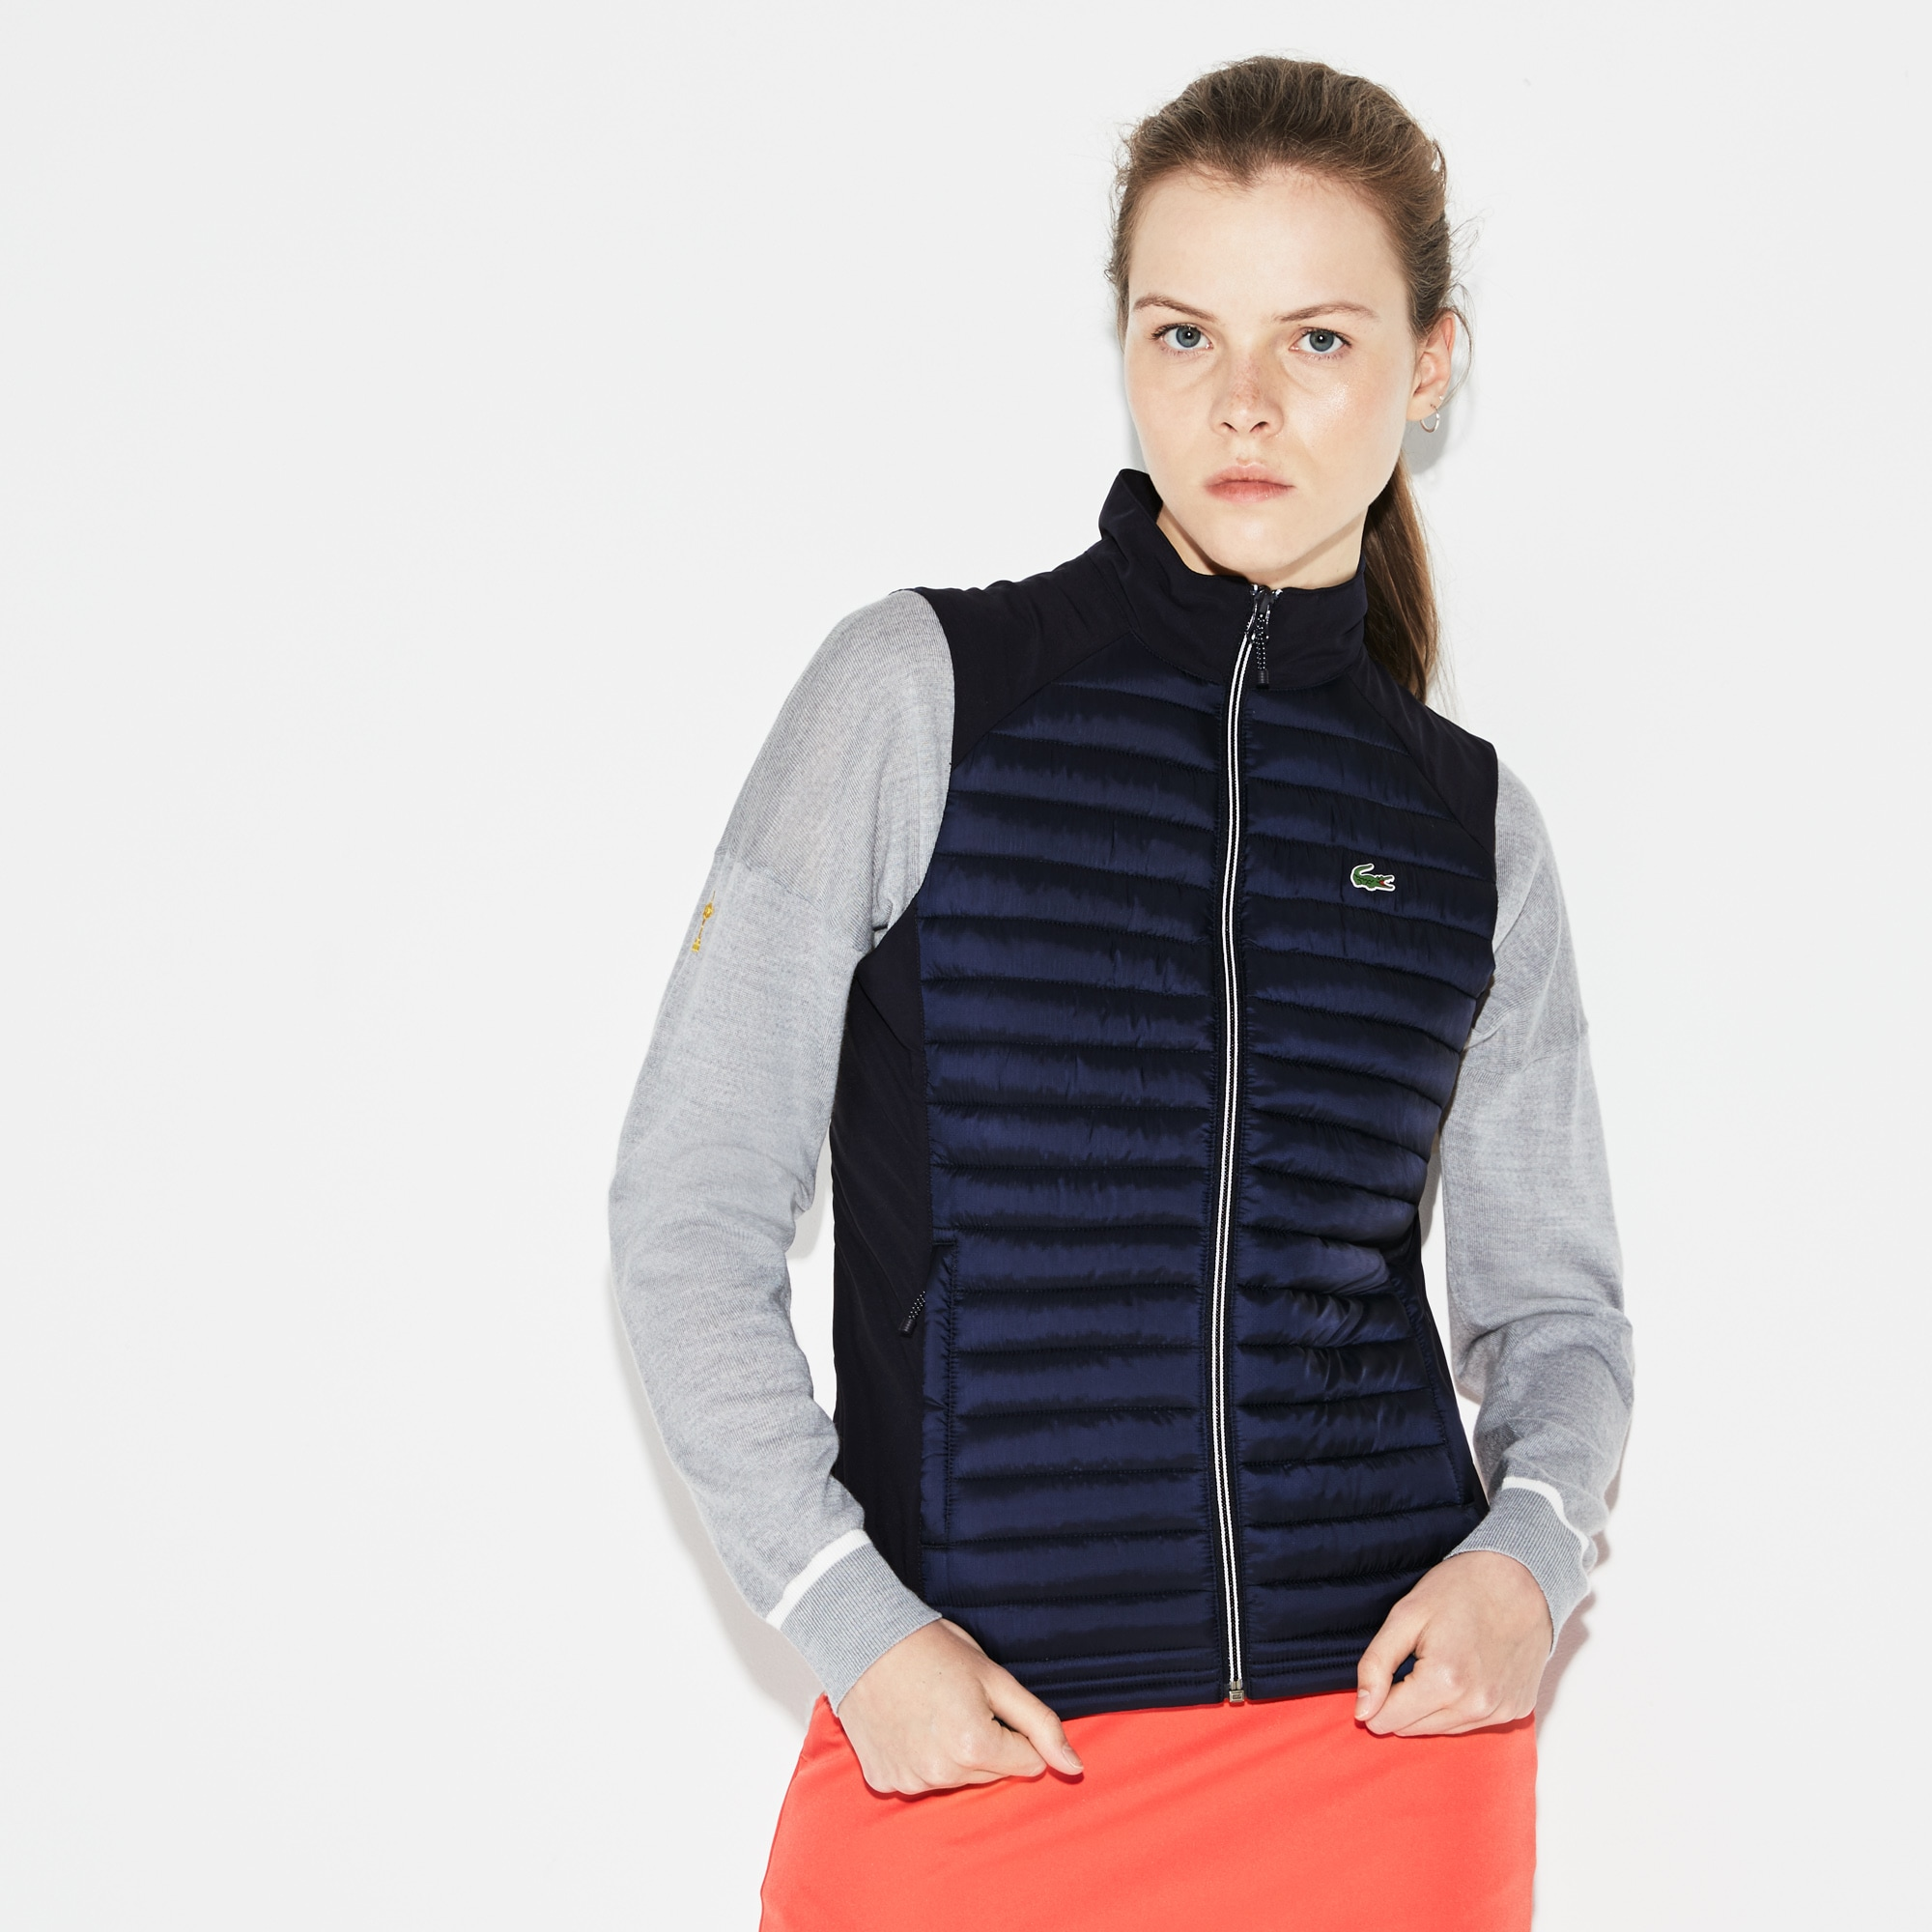 Women's Lacoste SPORT Ryder Cup Edition Technical Golf Vest